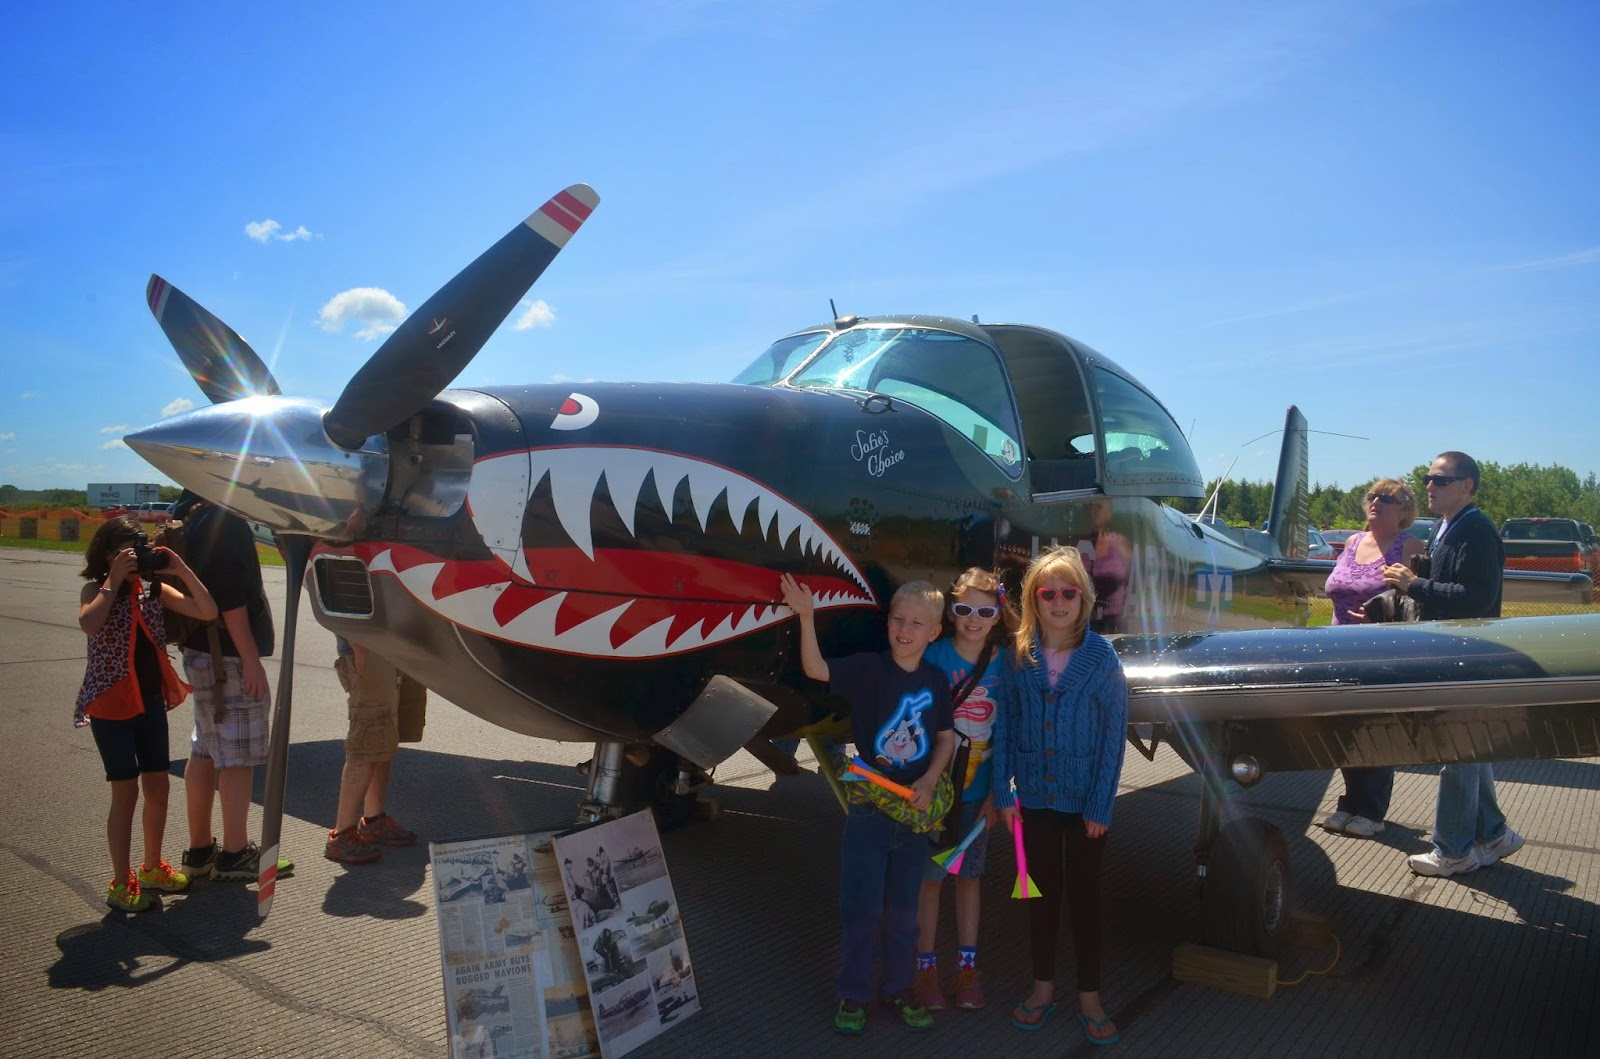 We had a great time visiting an airshow over Fourth of July weekend! #airshow